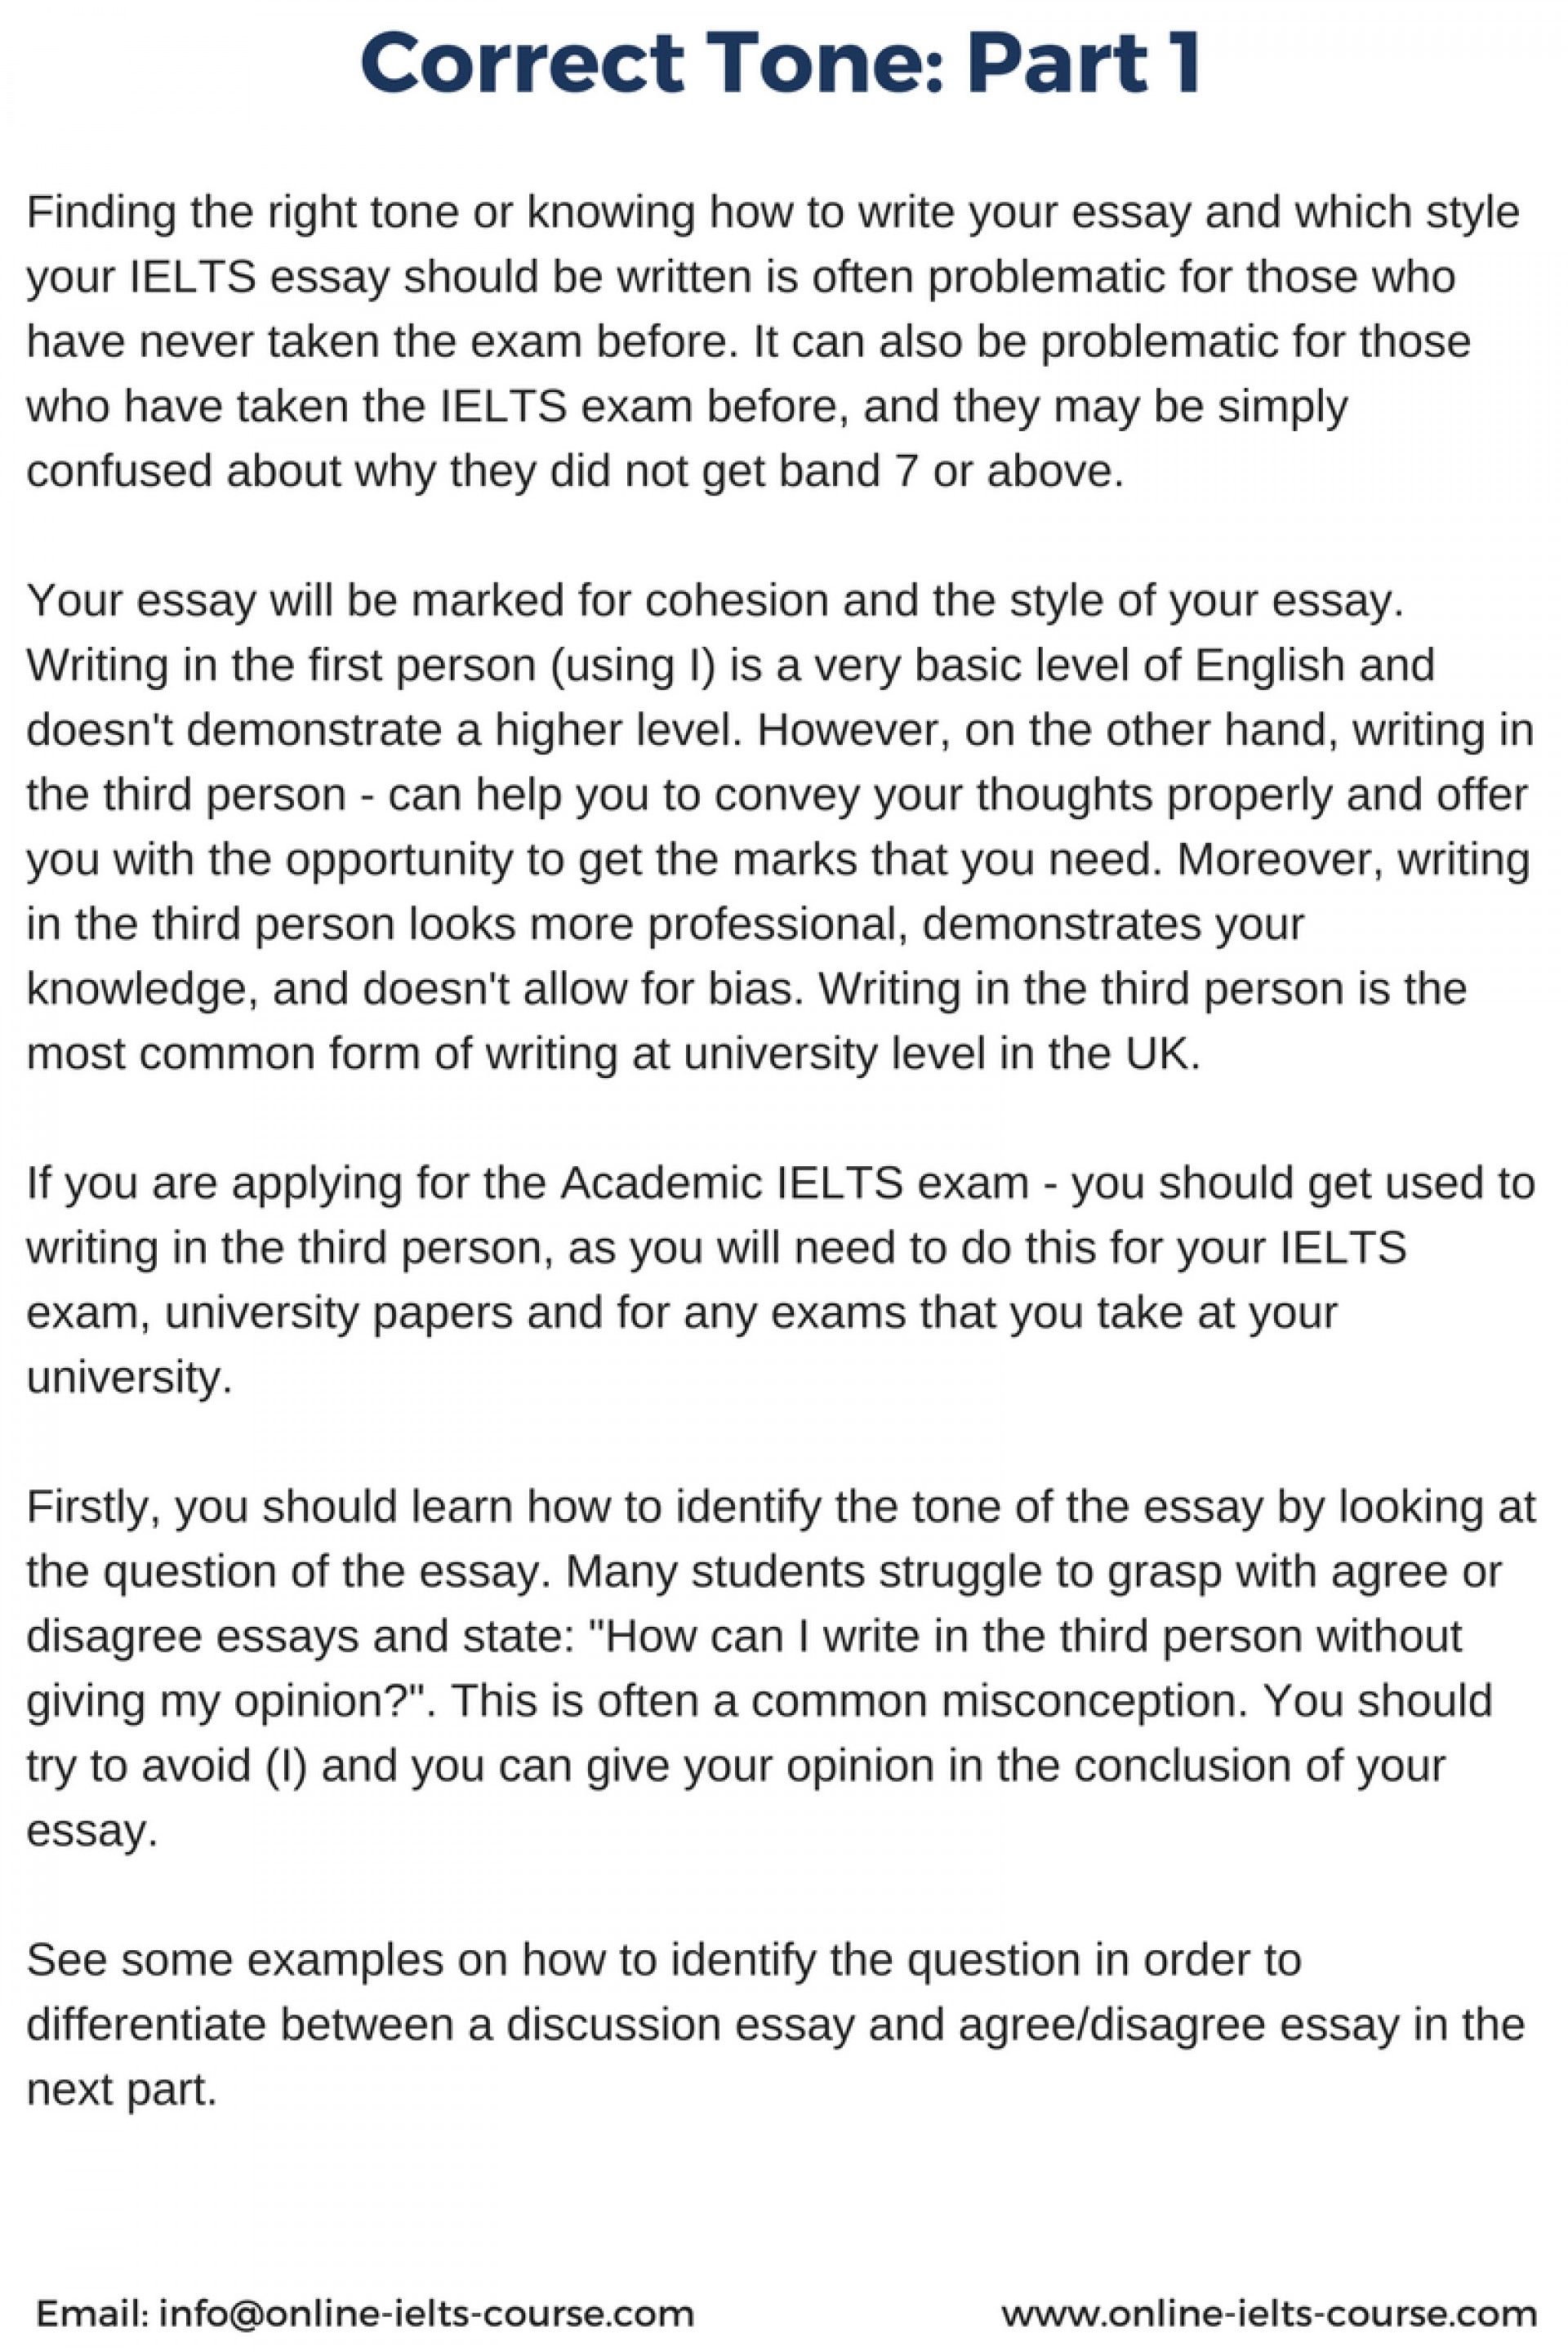 011 Essay Example C76421 B614b0e239514668a91884491c870a6fmv2 Tone Of Dreaded An The Is Primarily Established Academic What Usual Argumentative 1920